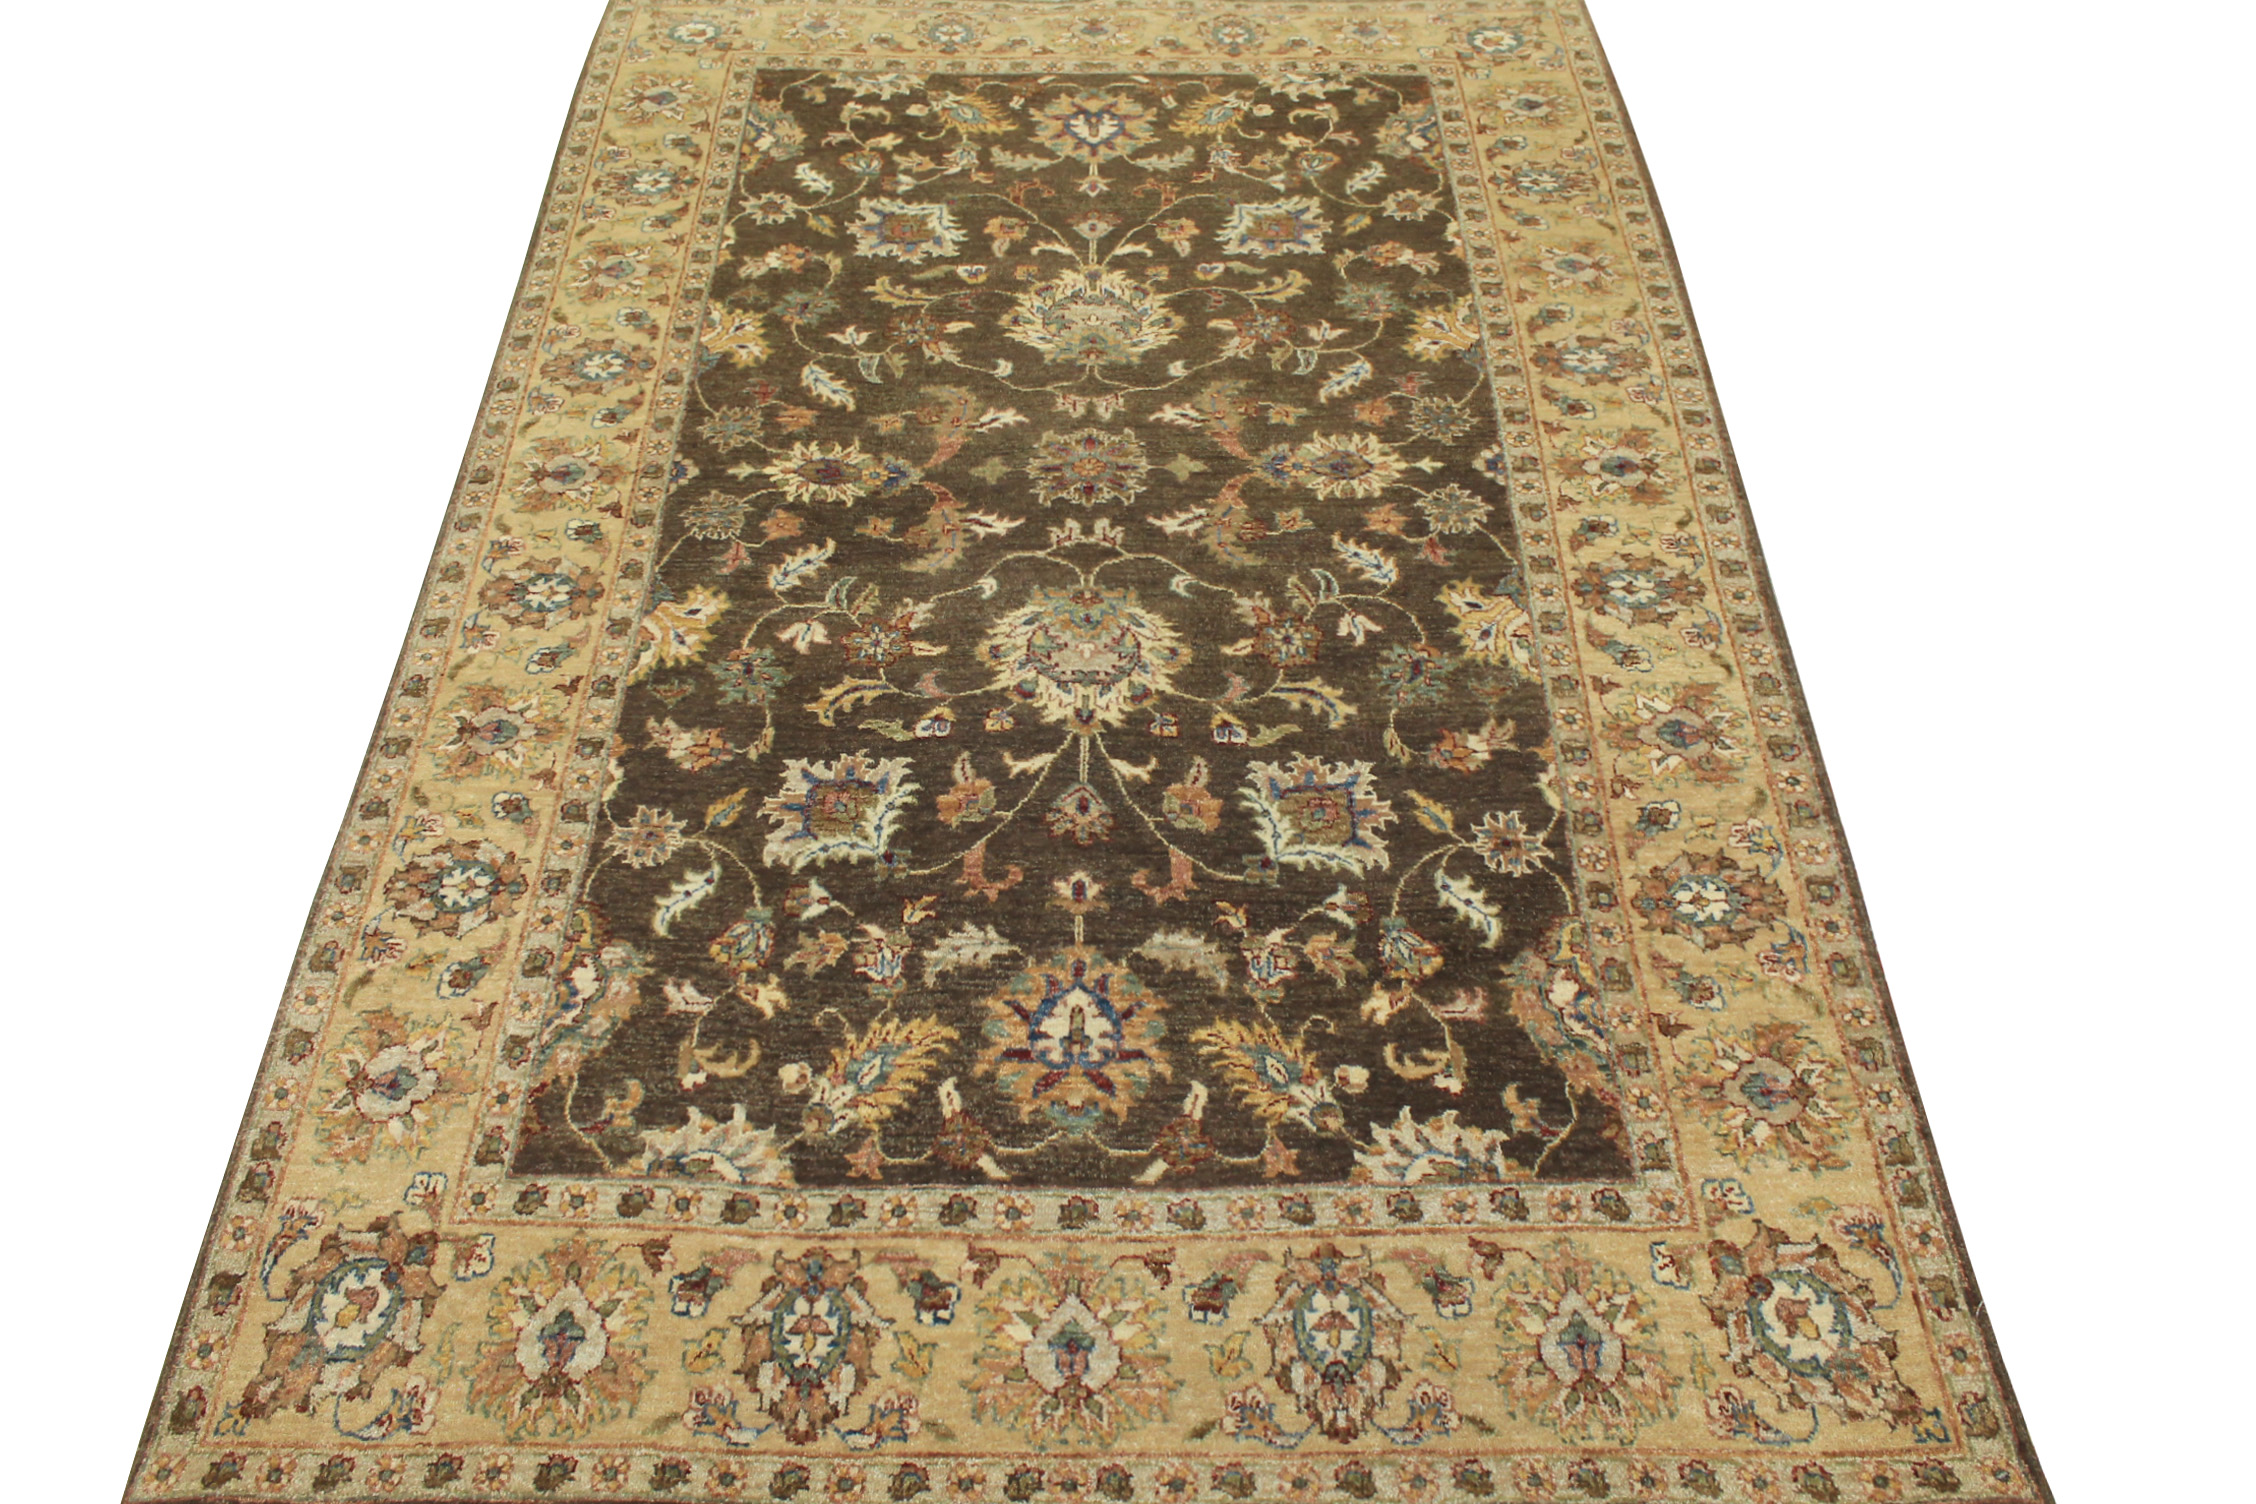 5x7/8 Traditional Hand Knotted Wool Area Rug - MR11688